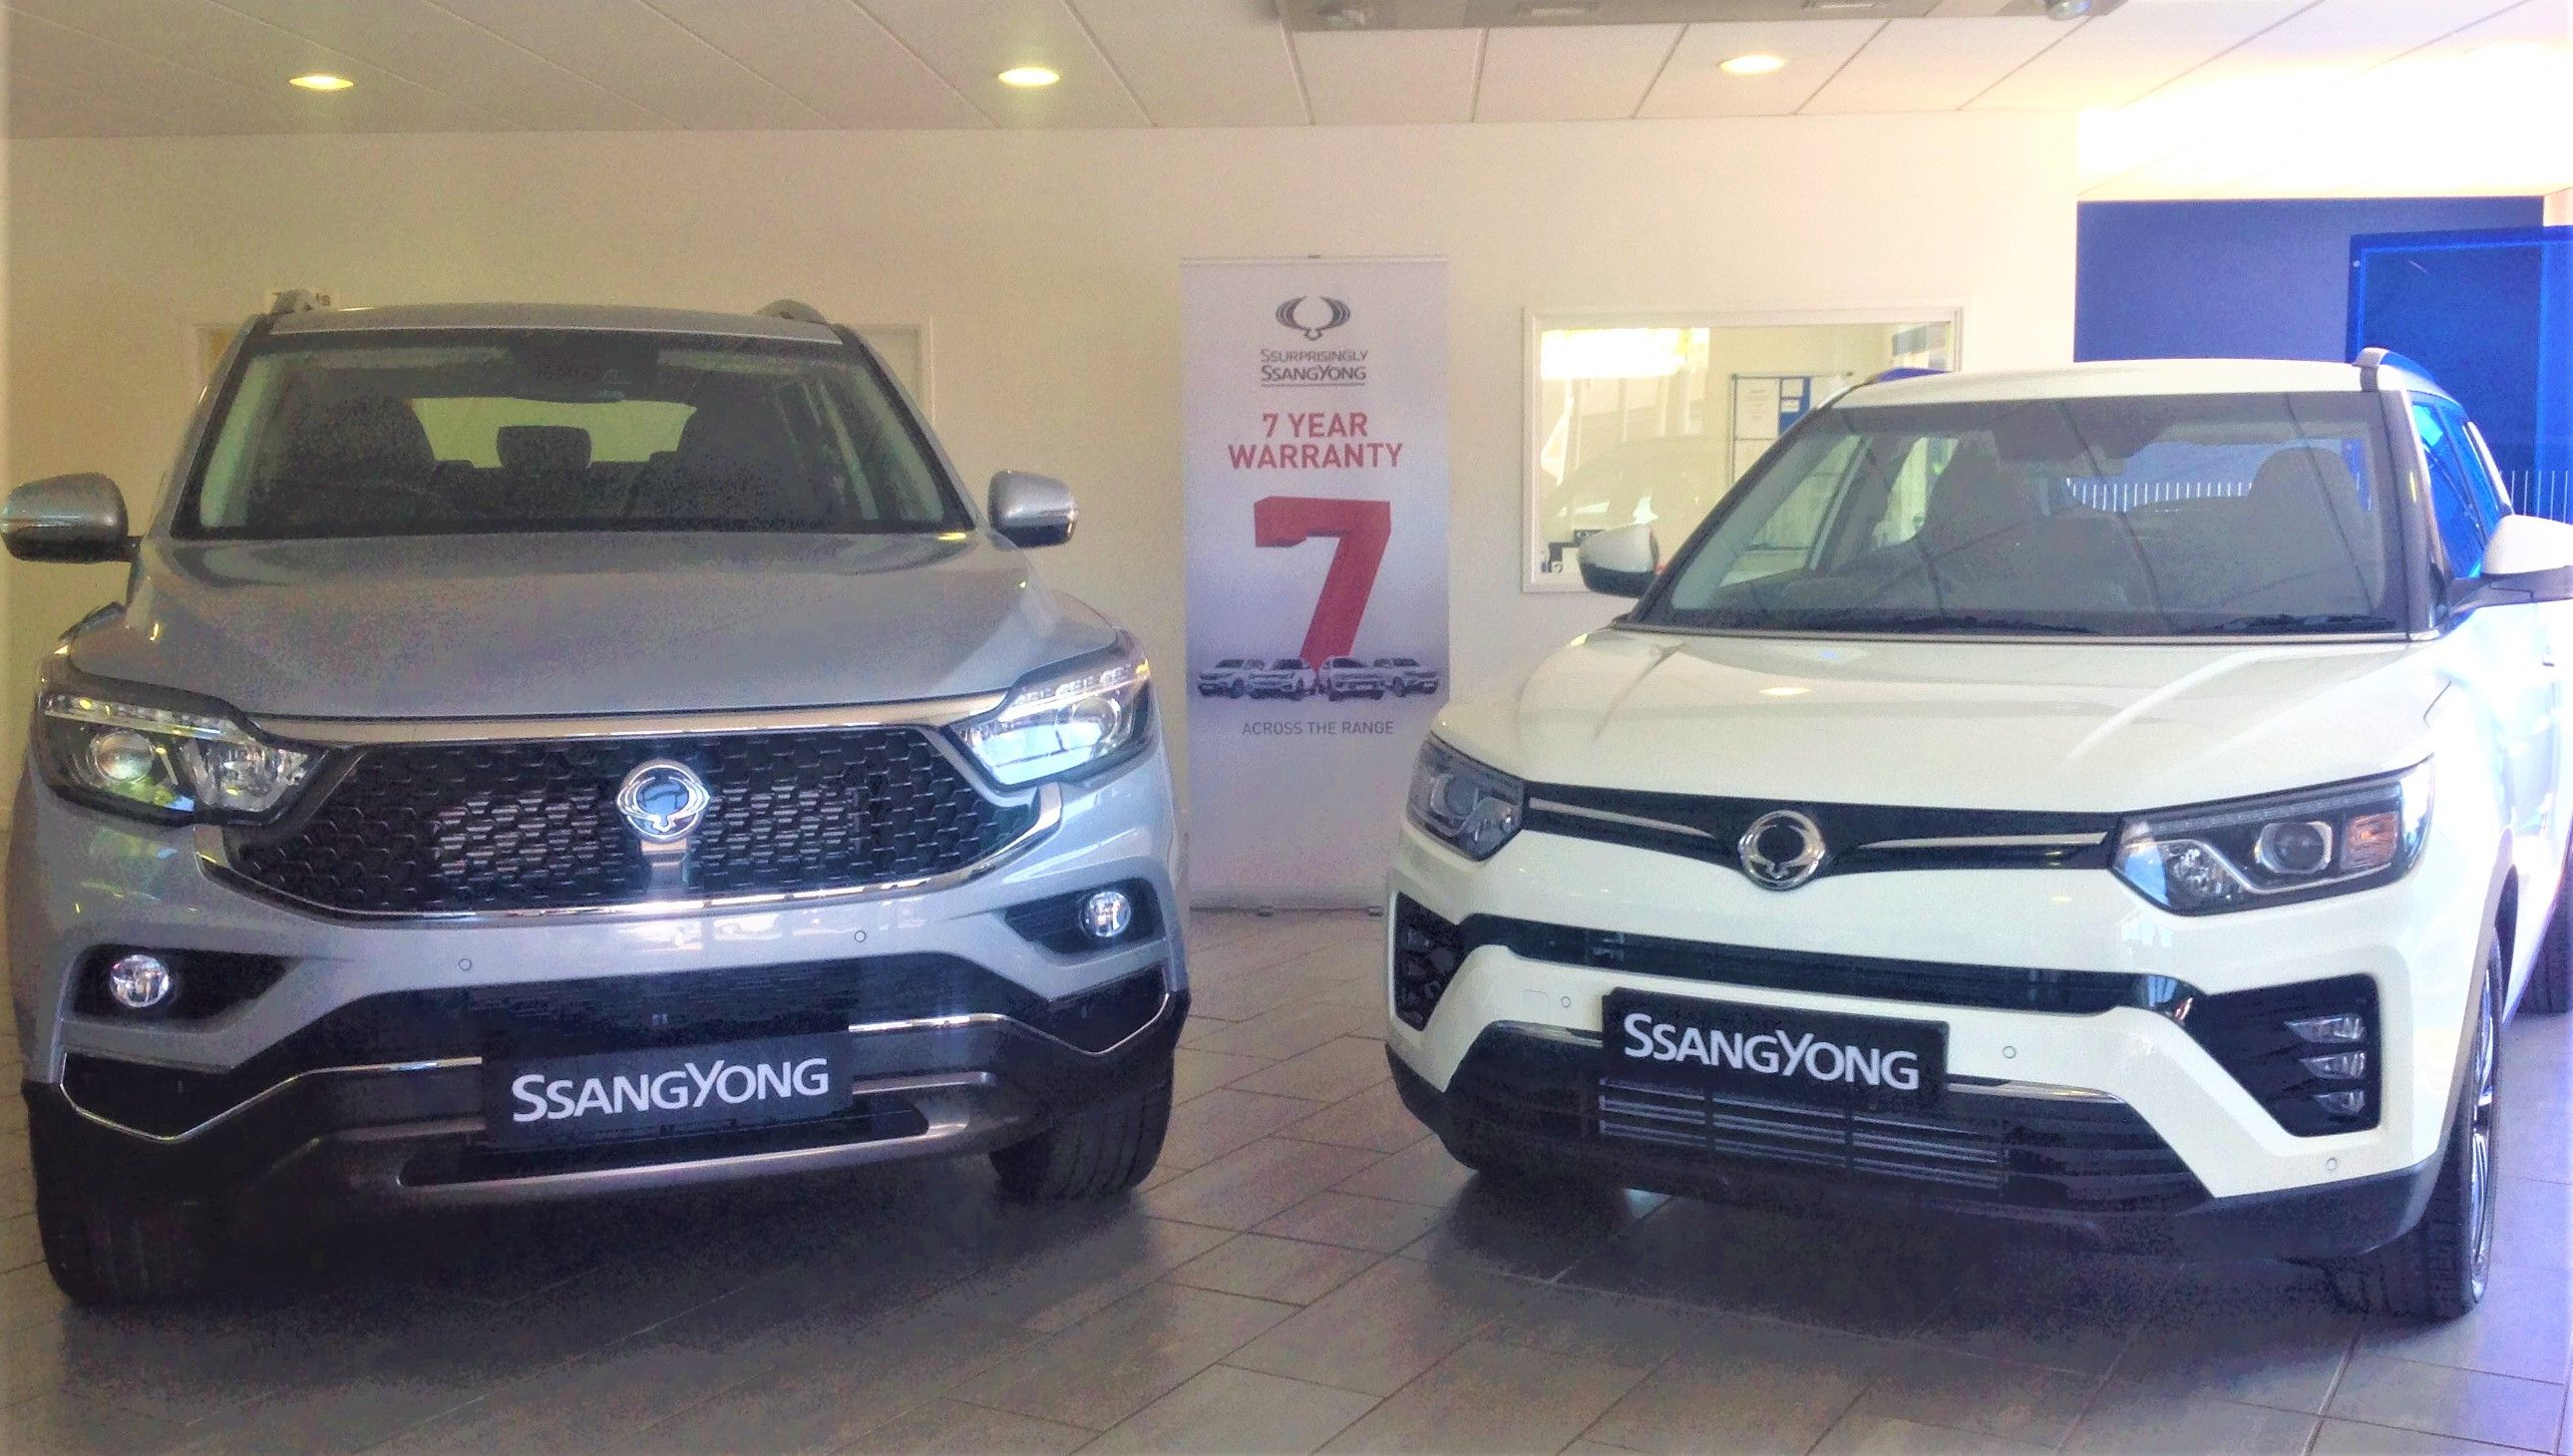 SsangYong is here